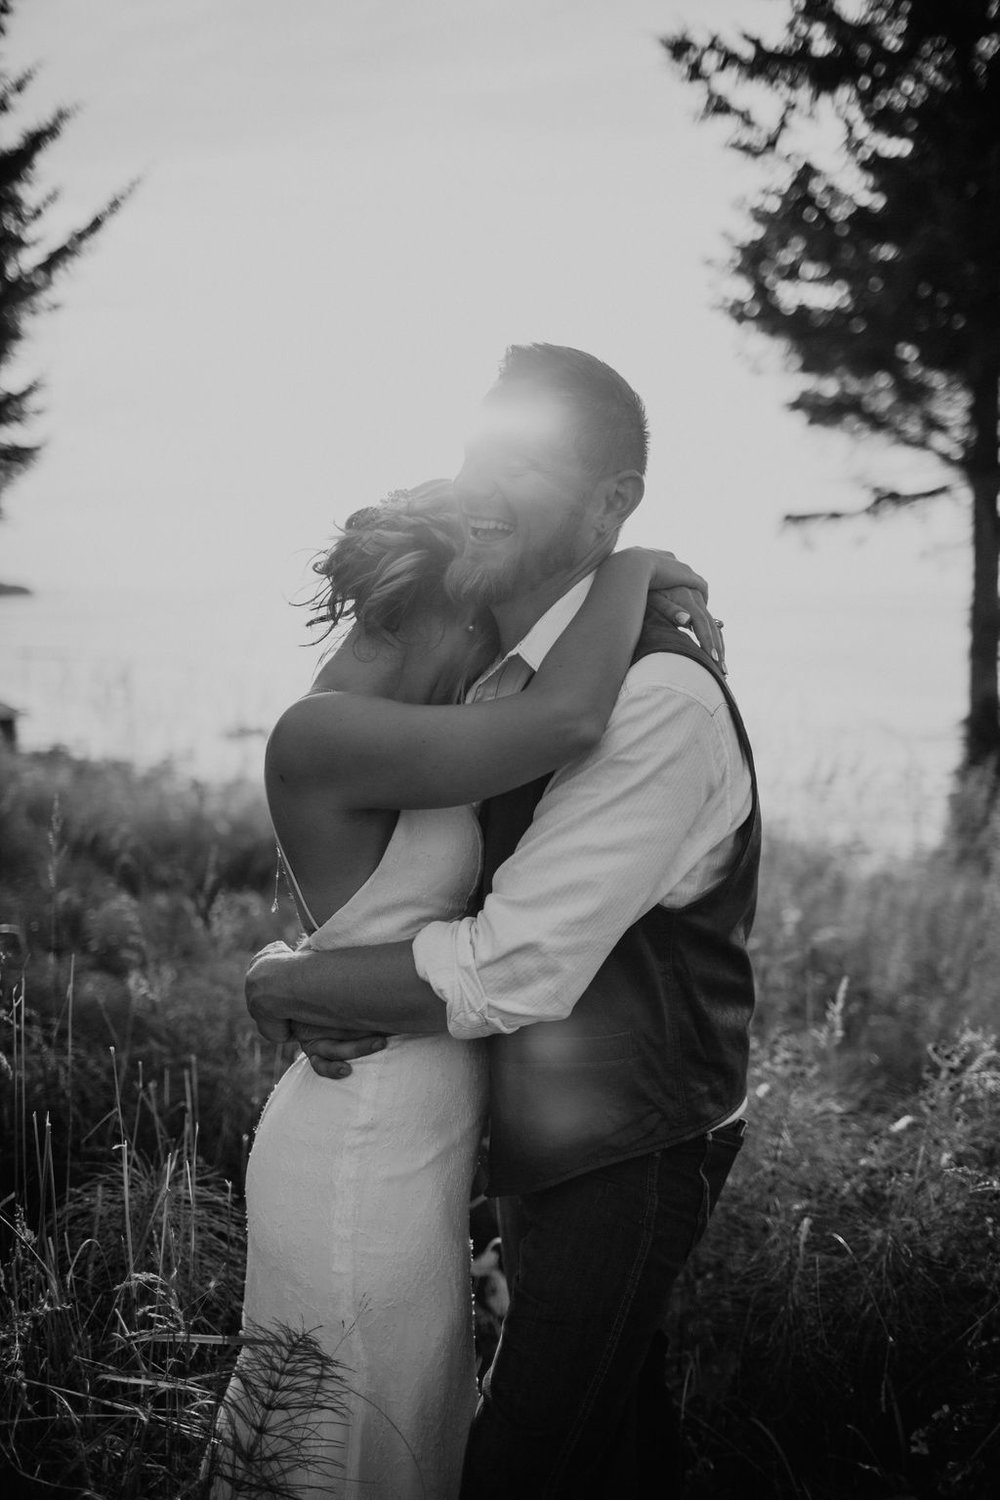 Port-Angeles-Wedding-Photographer-pnw-Whiskey-Creek-Beach-NW-Washington-couples-kayladawnphoto-kayla-dawn-photography-olympic-peninsula-hurricane-ridge-49.jpg